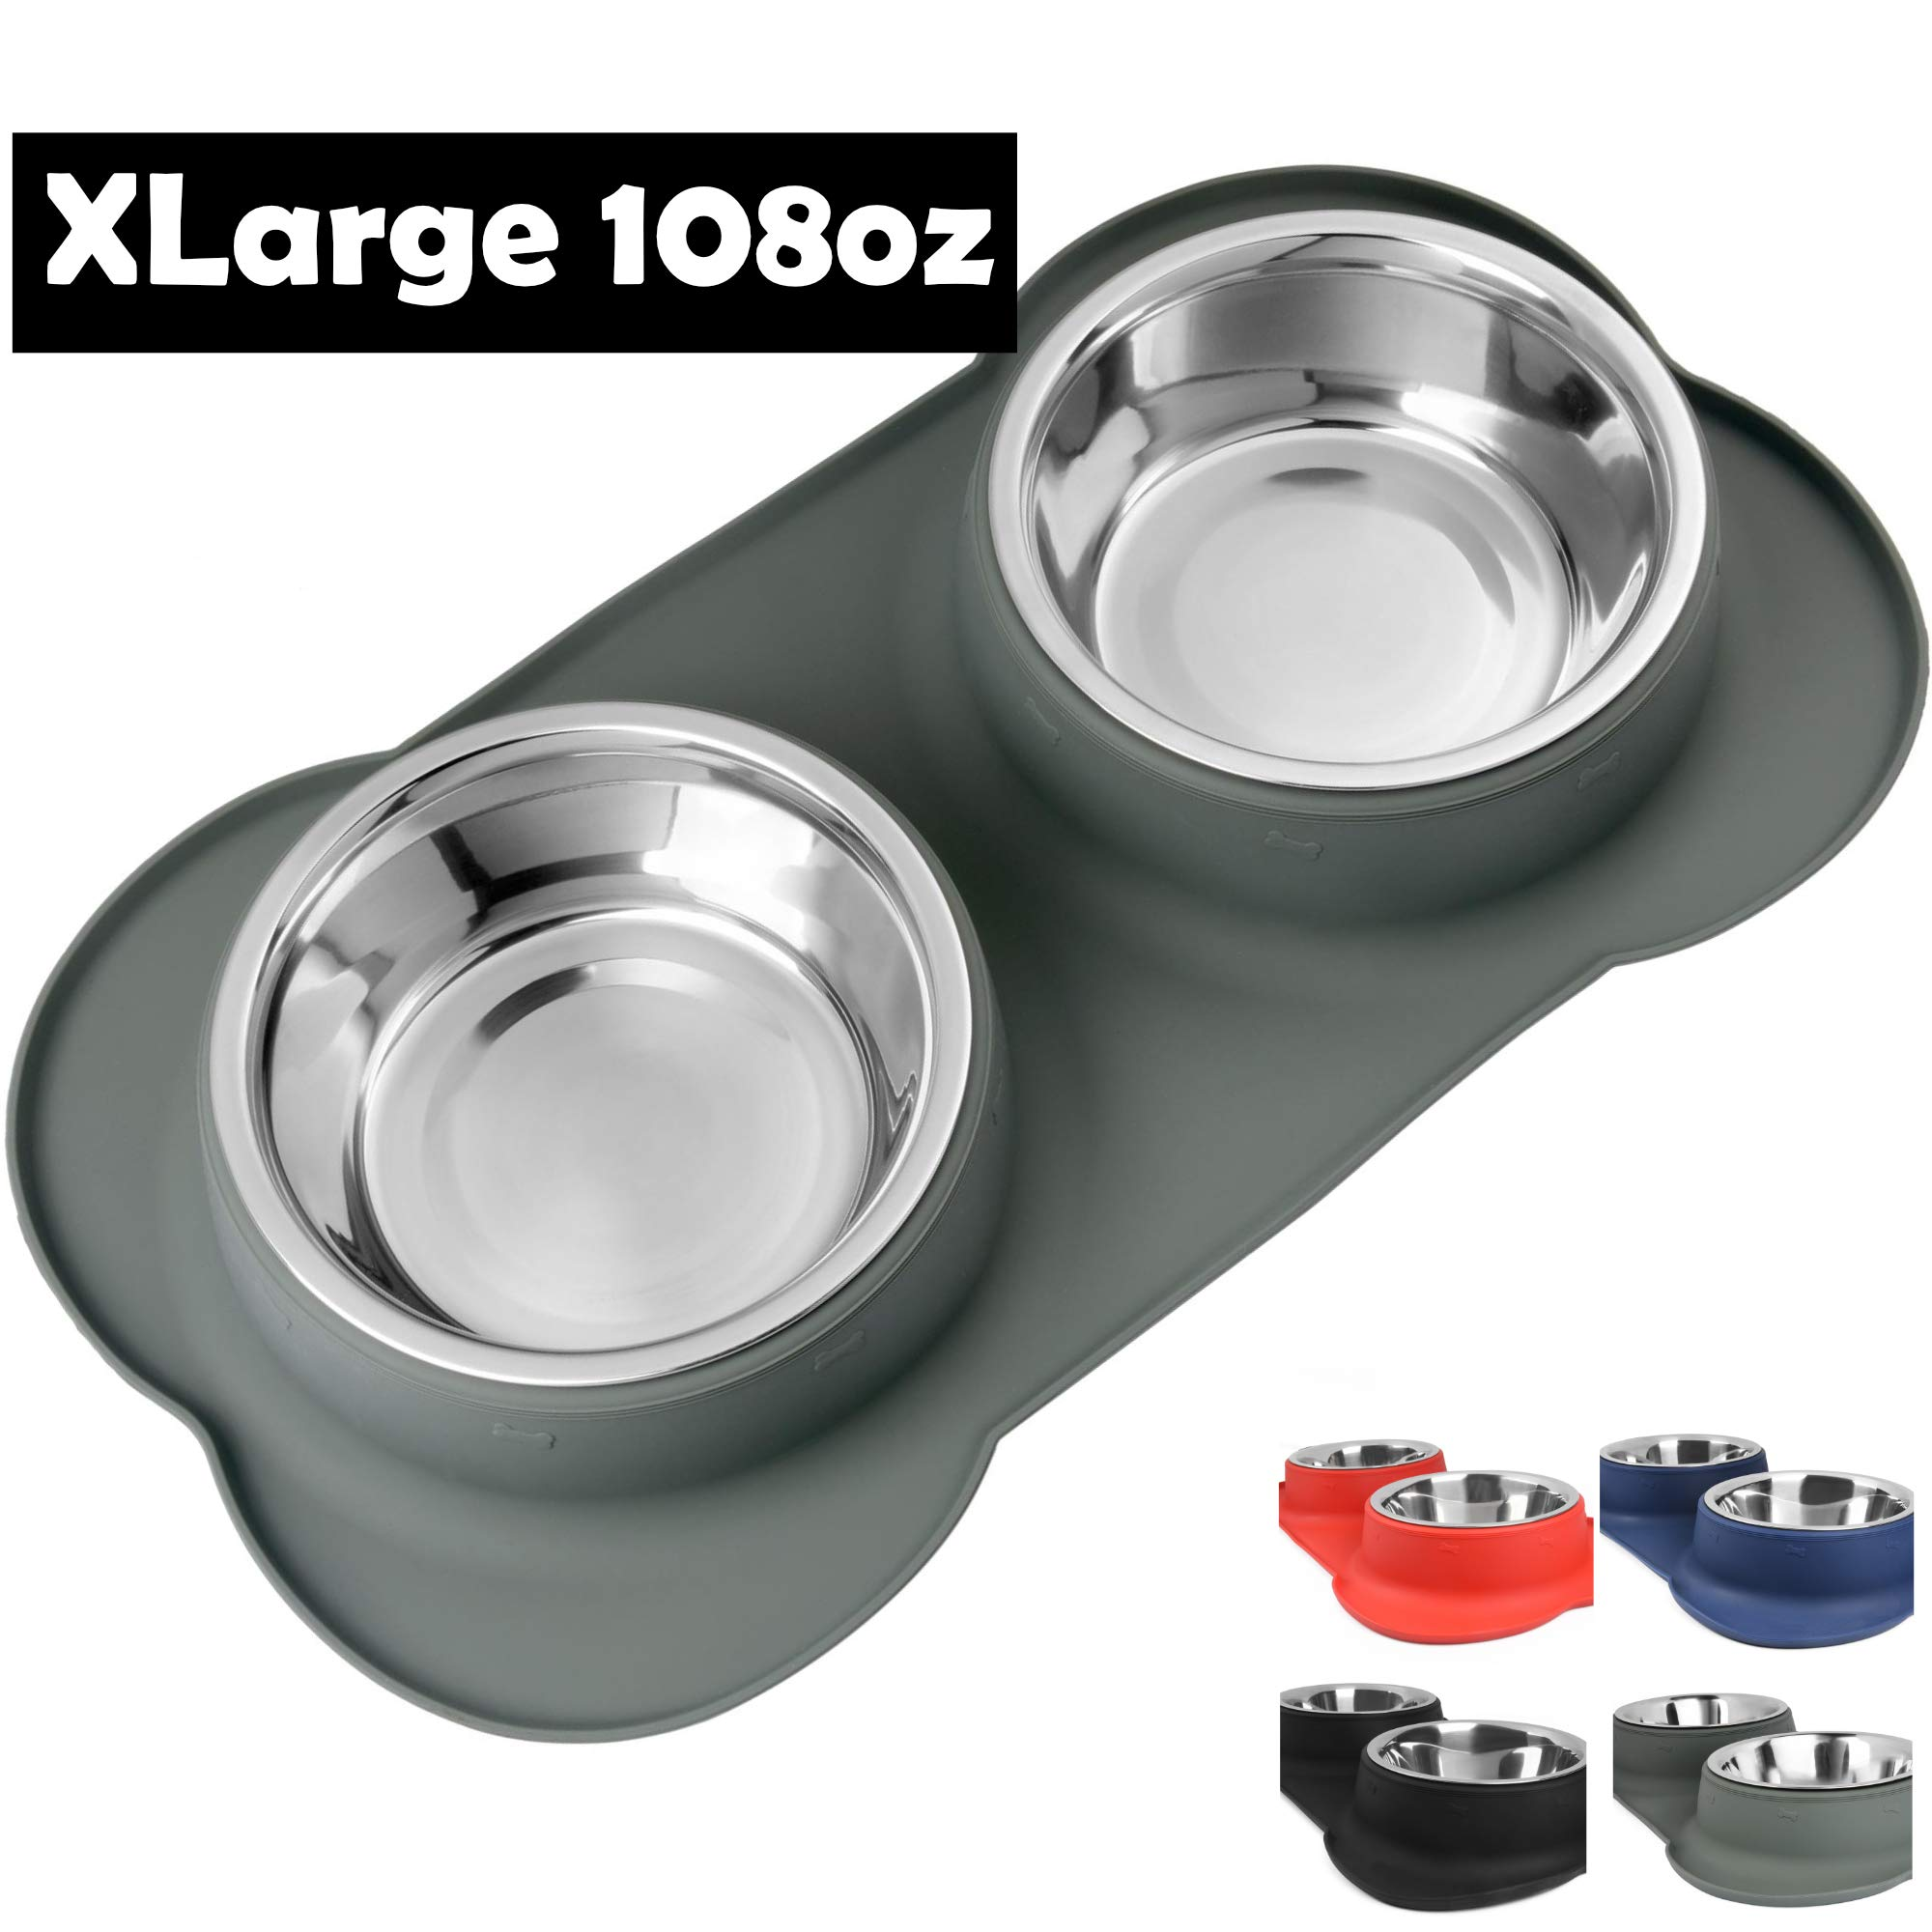 Large Dog Bowls & Mat Set - Two Big 54oz (108oz Total) Removable Stainless Steel Bowl Set in a Stylish Grey No Mess, No Spill, Non Skid, Silicone Mat. Food & Water Bowls for Medium to Large Dog Grey by Snappies Petcare